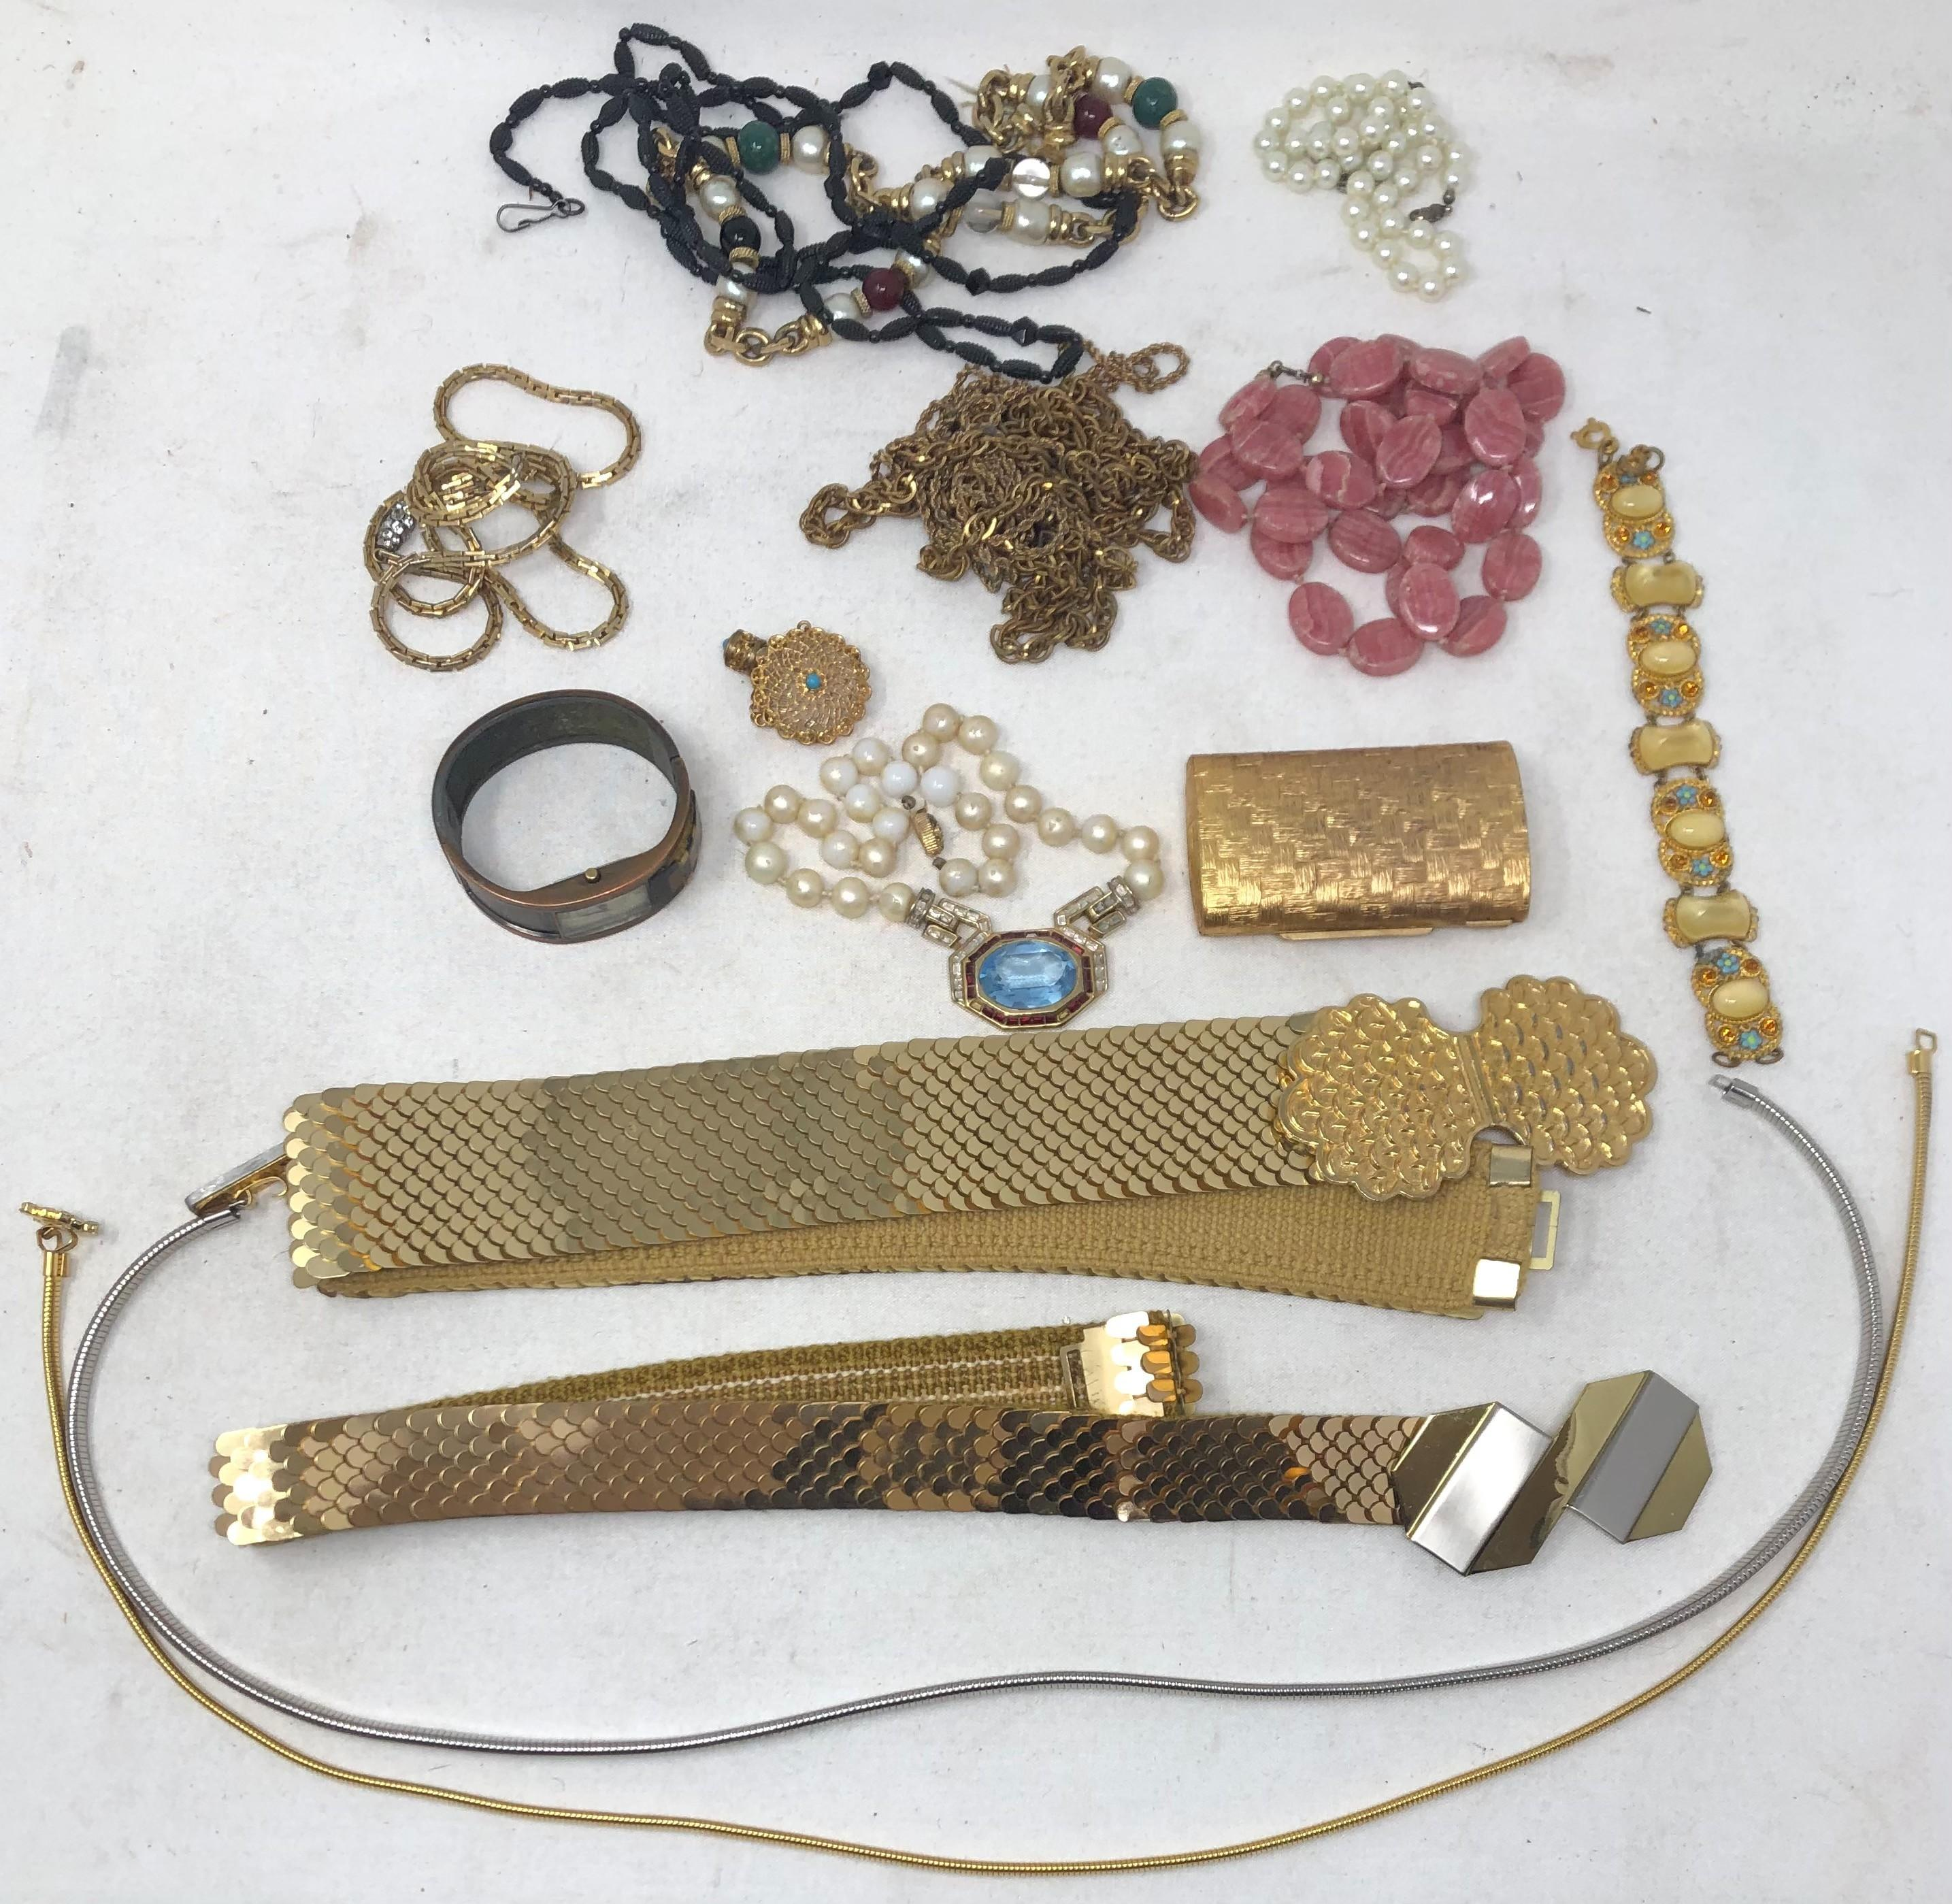 Collection of costume jewelry and lady's belts: four belts include two gold tone stretch with contemporary design buckle, width 1 3/4 inches on one; two thin stretch with one rhinestone buckle; one wheat pattern compa...